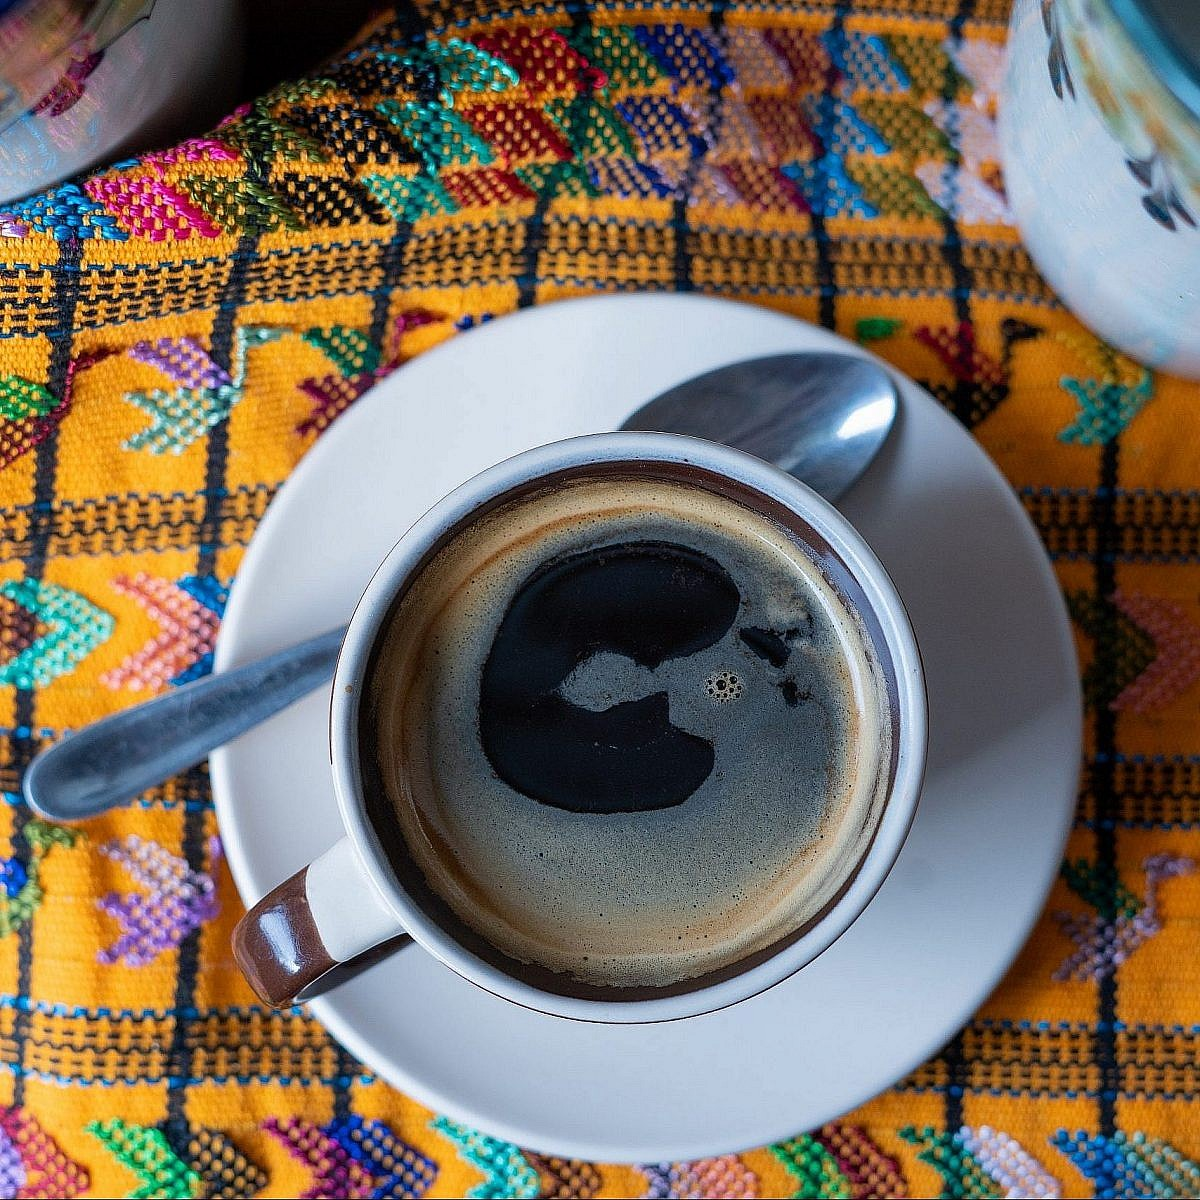 Photo of coffee in cup on brocaded tablecloth taken in Guatamala